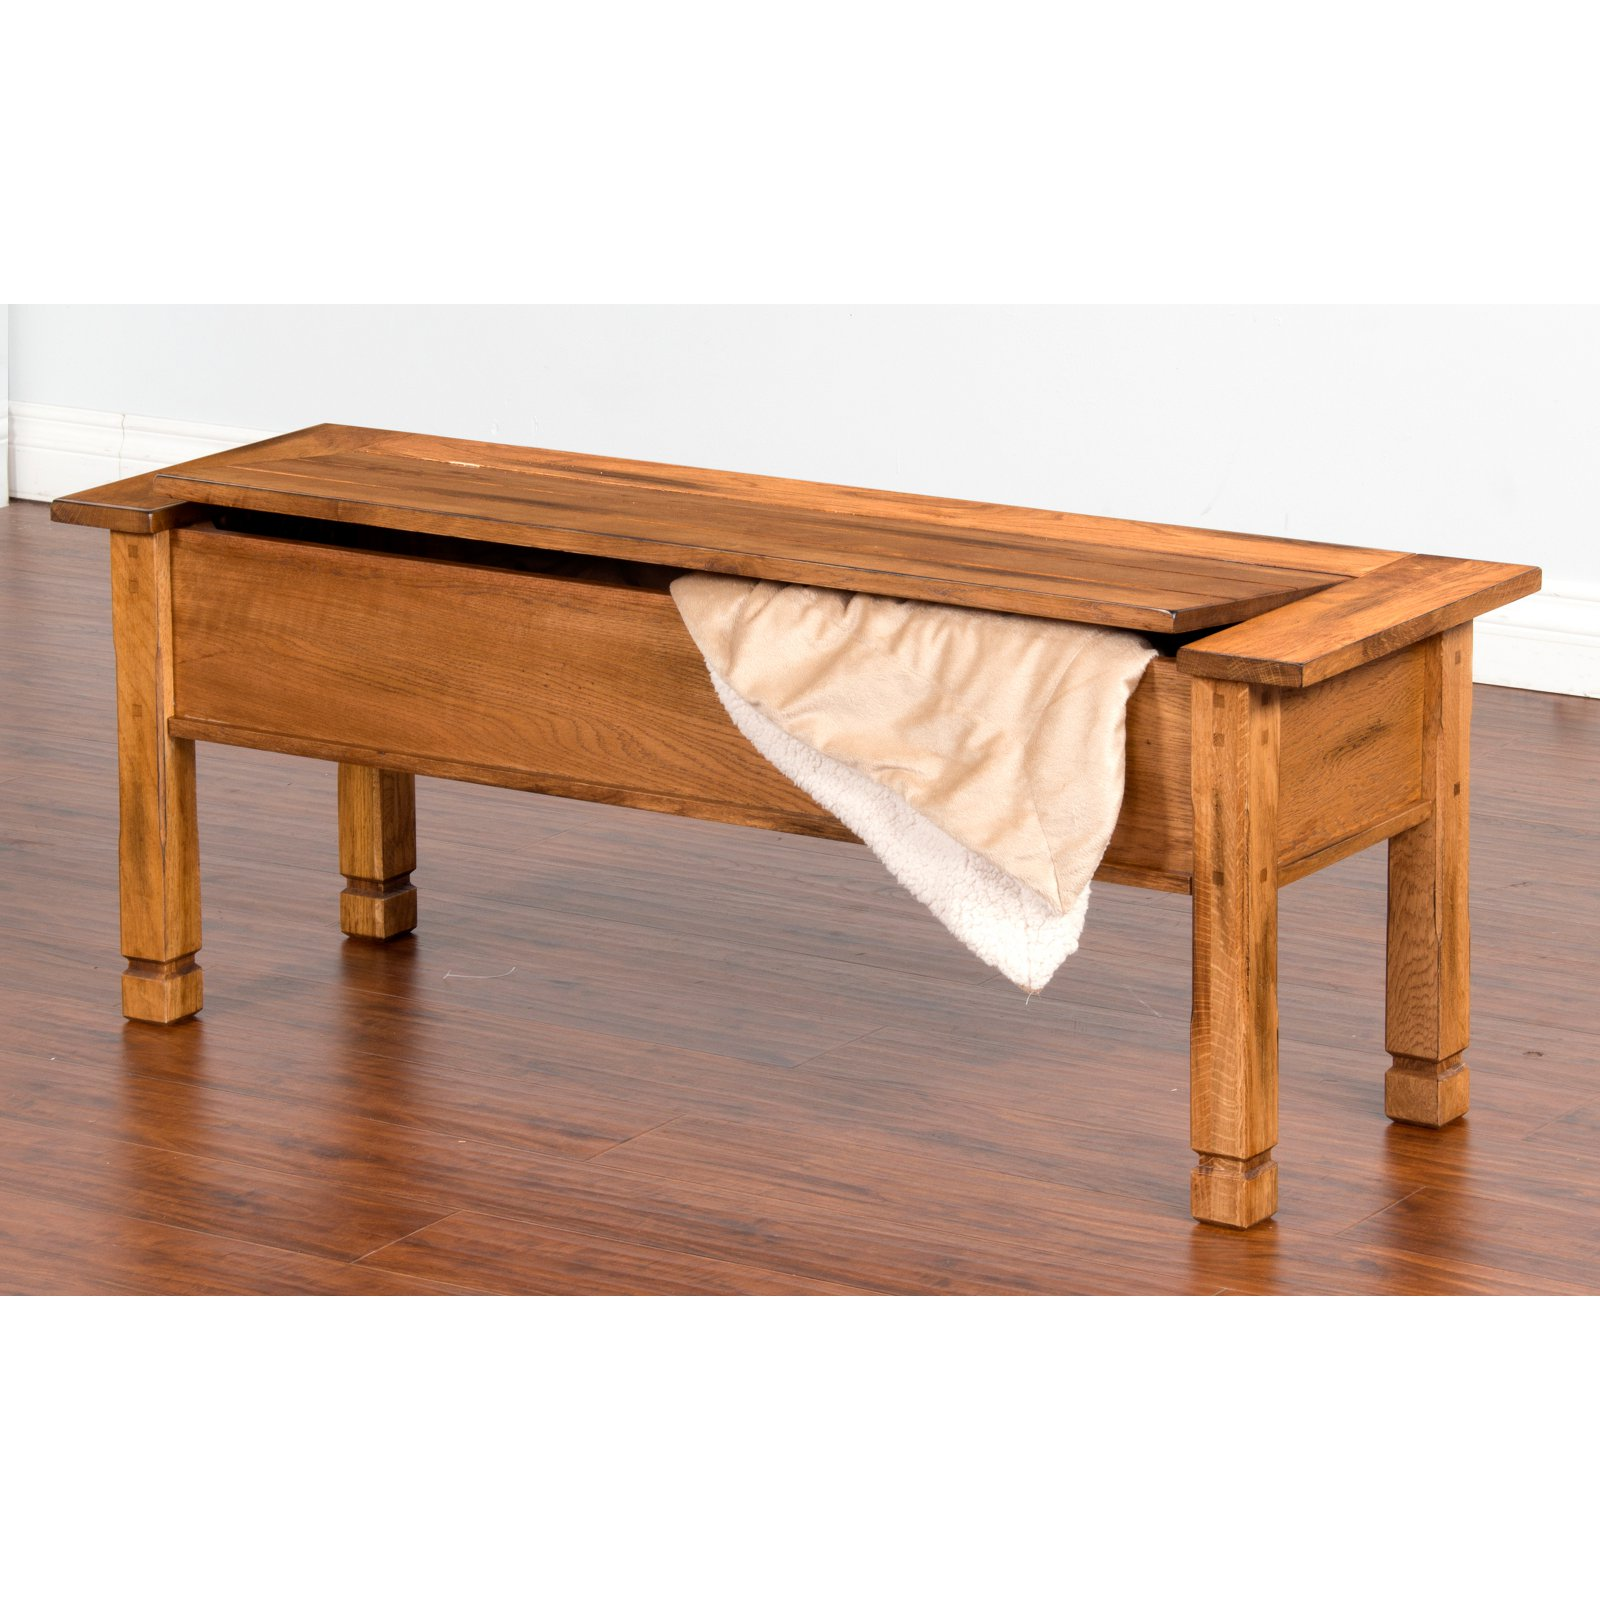 Sunny Designs Sedona Side Bench with Storage